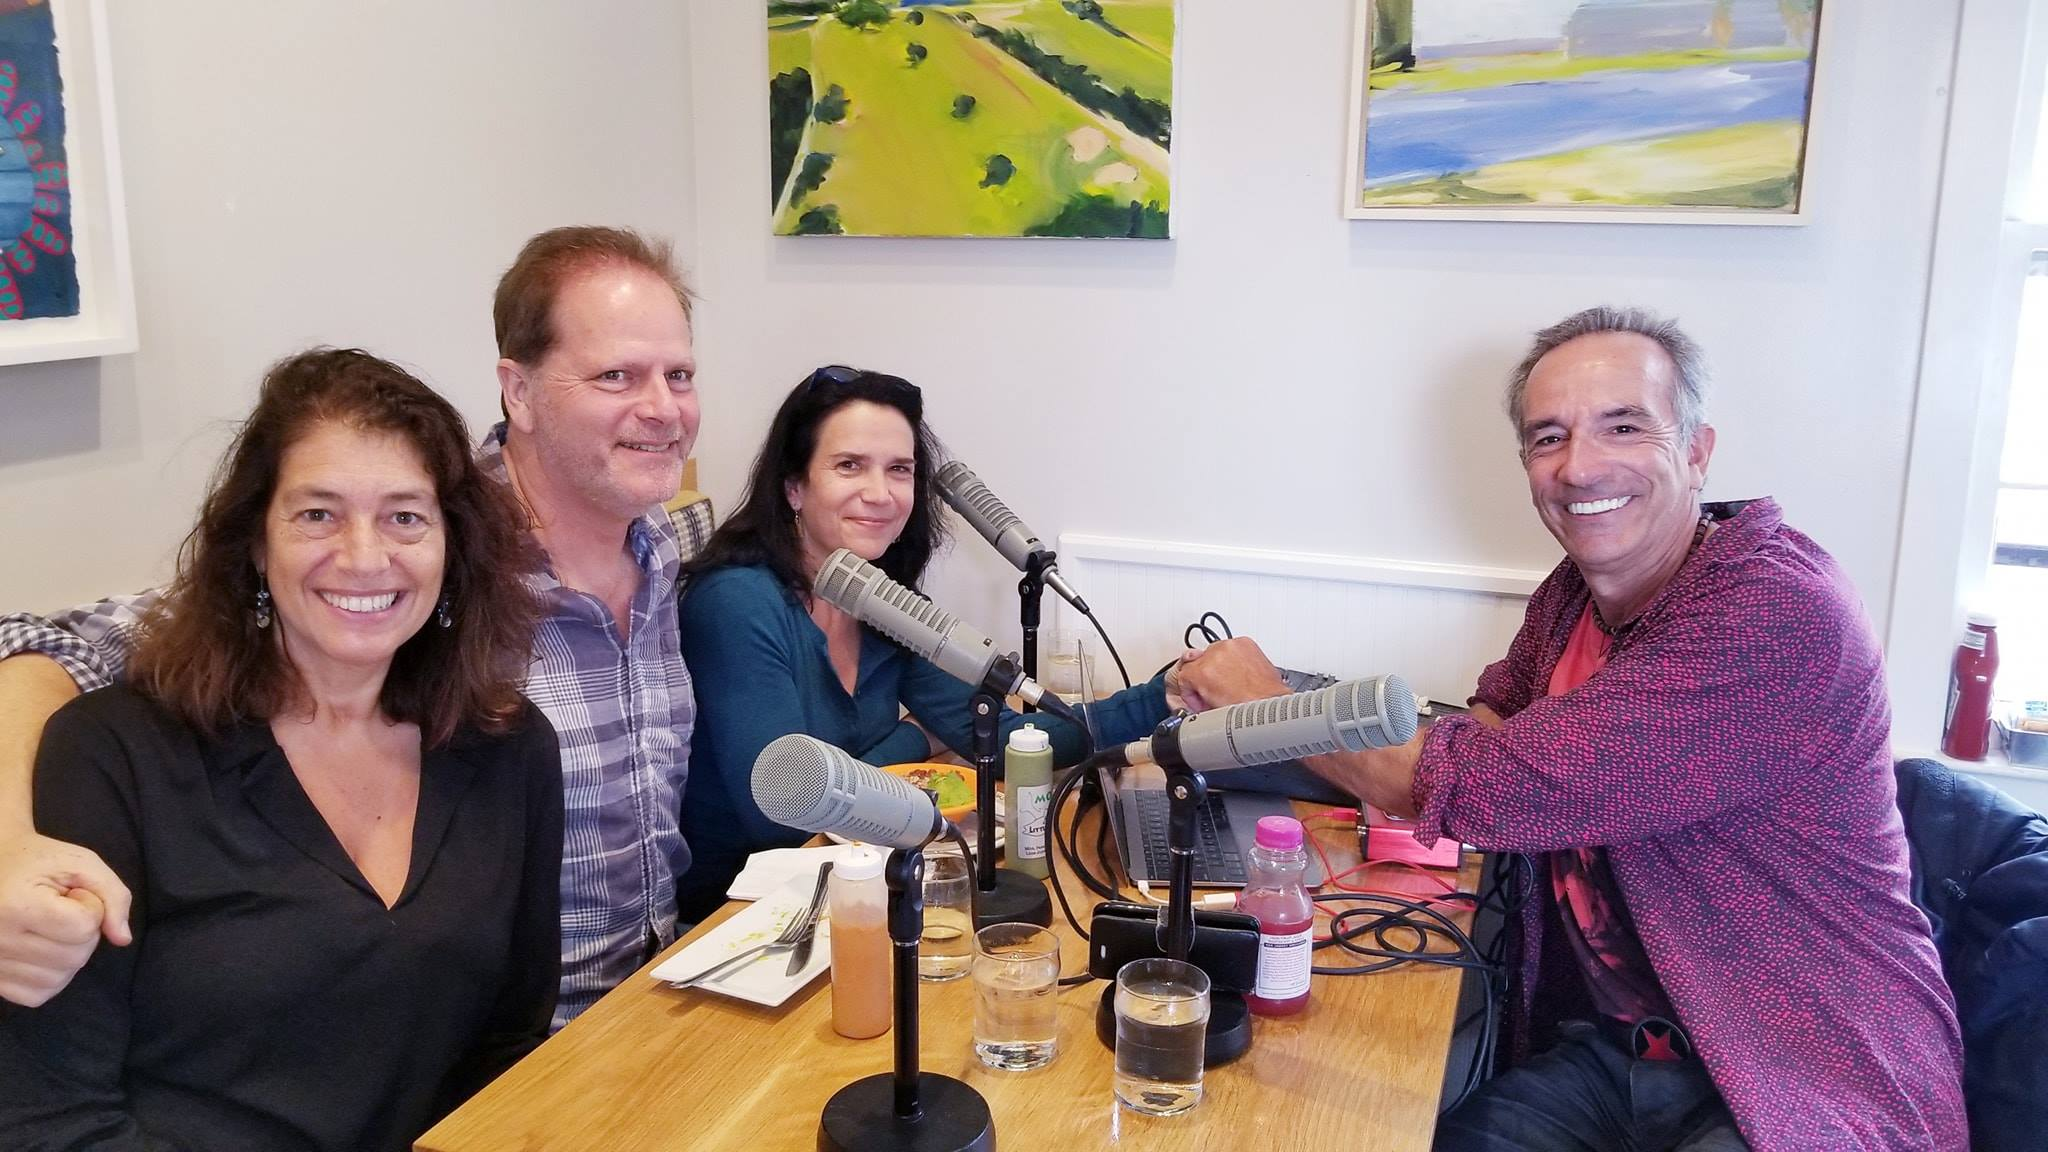 A great show with photojournalist and  A Taste of Cuba  author Cynthia Carris Alonso and musician  Alfredo Merat Radio Europa , talking about Cuba.